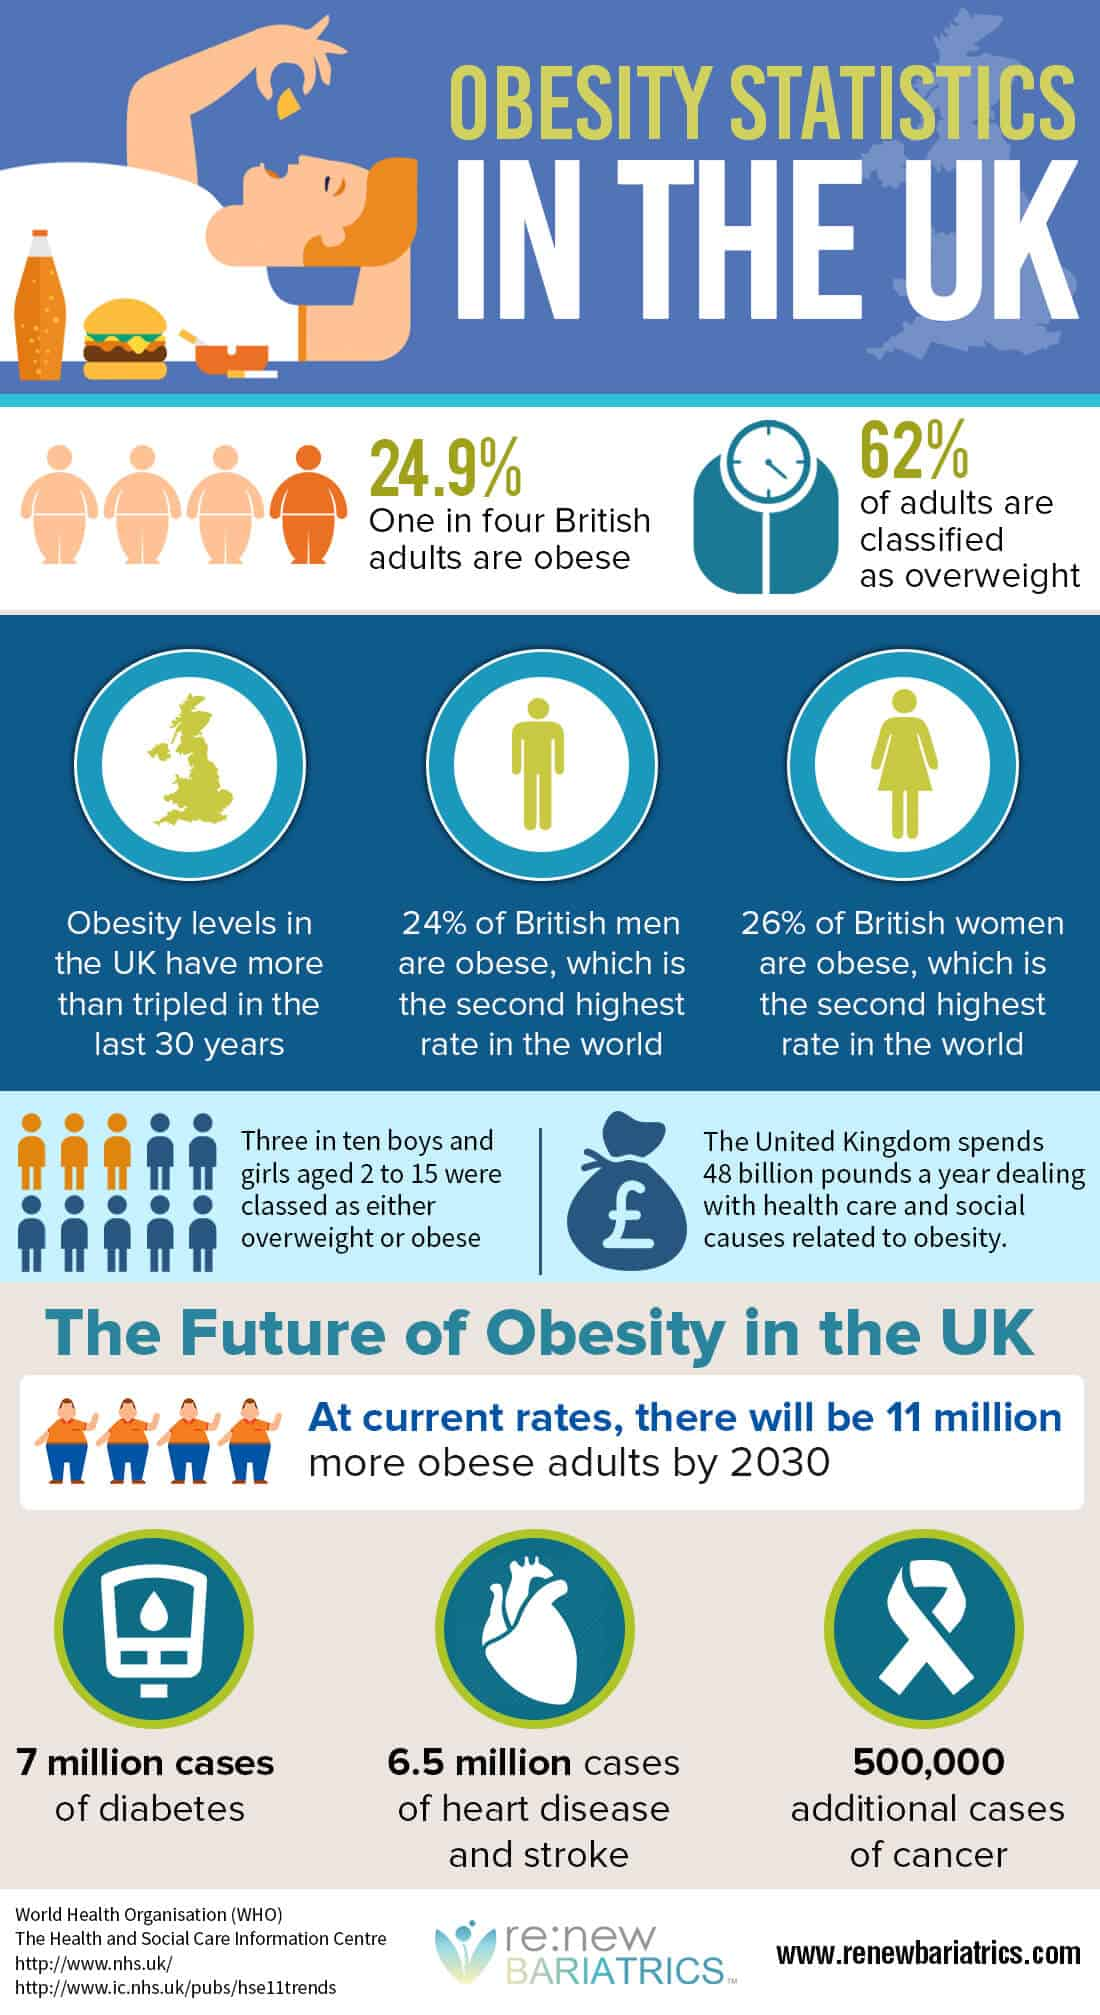 the cause of high levels of obesity in the uk